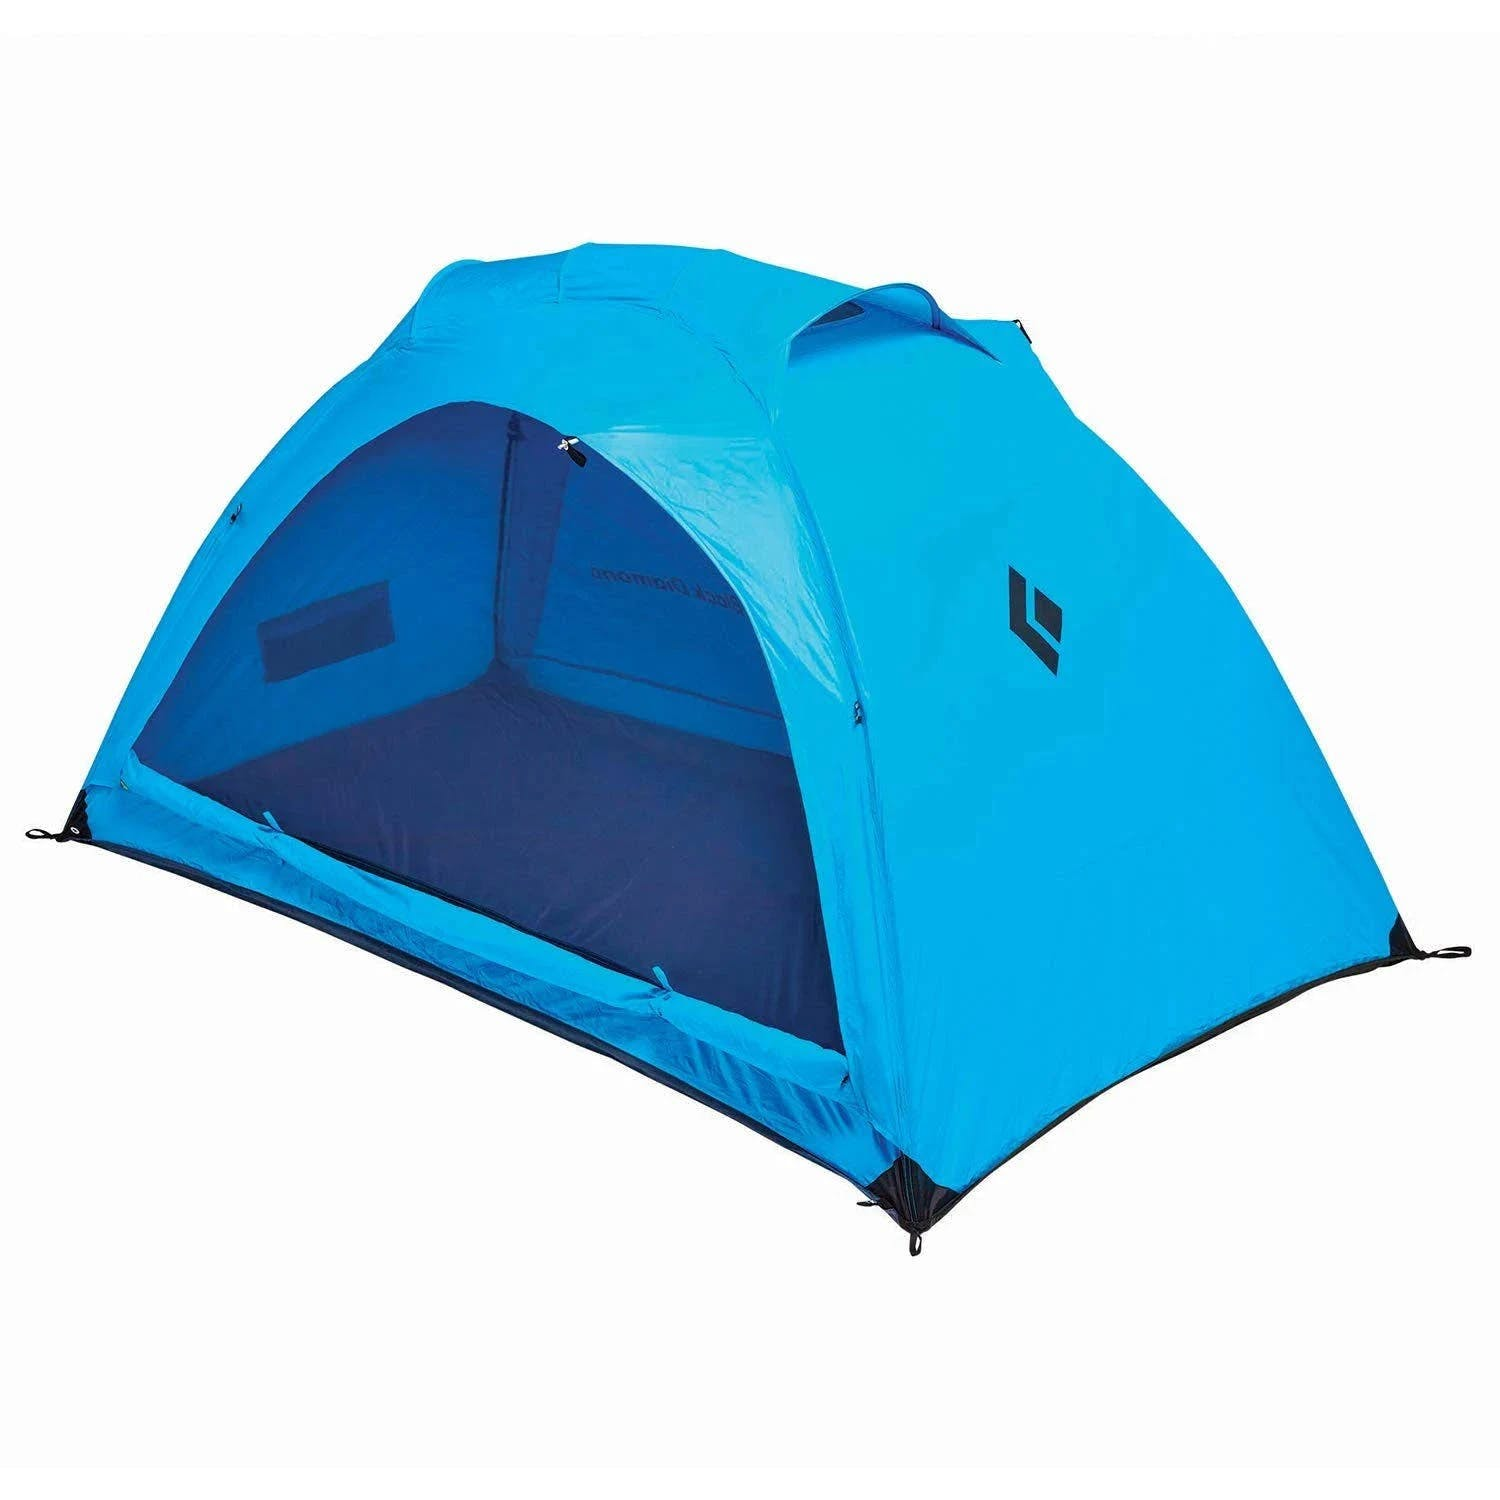 Black Diamond Hilight 2p Tent